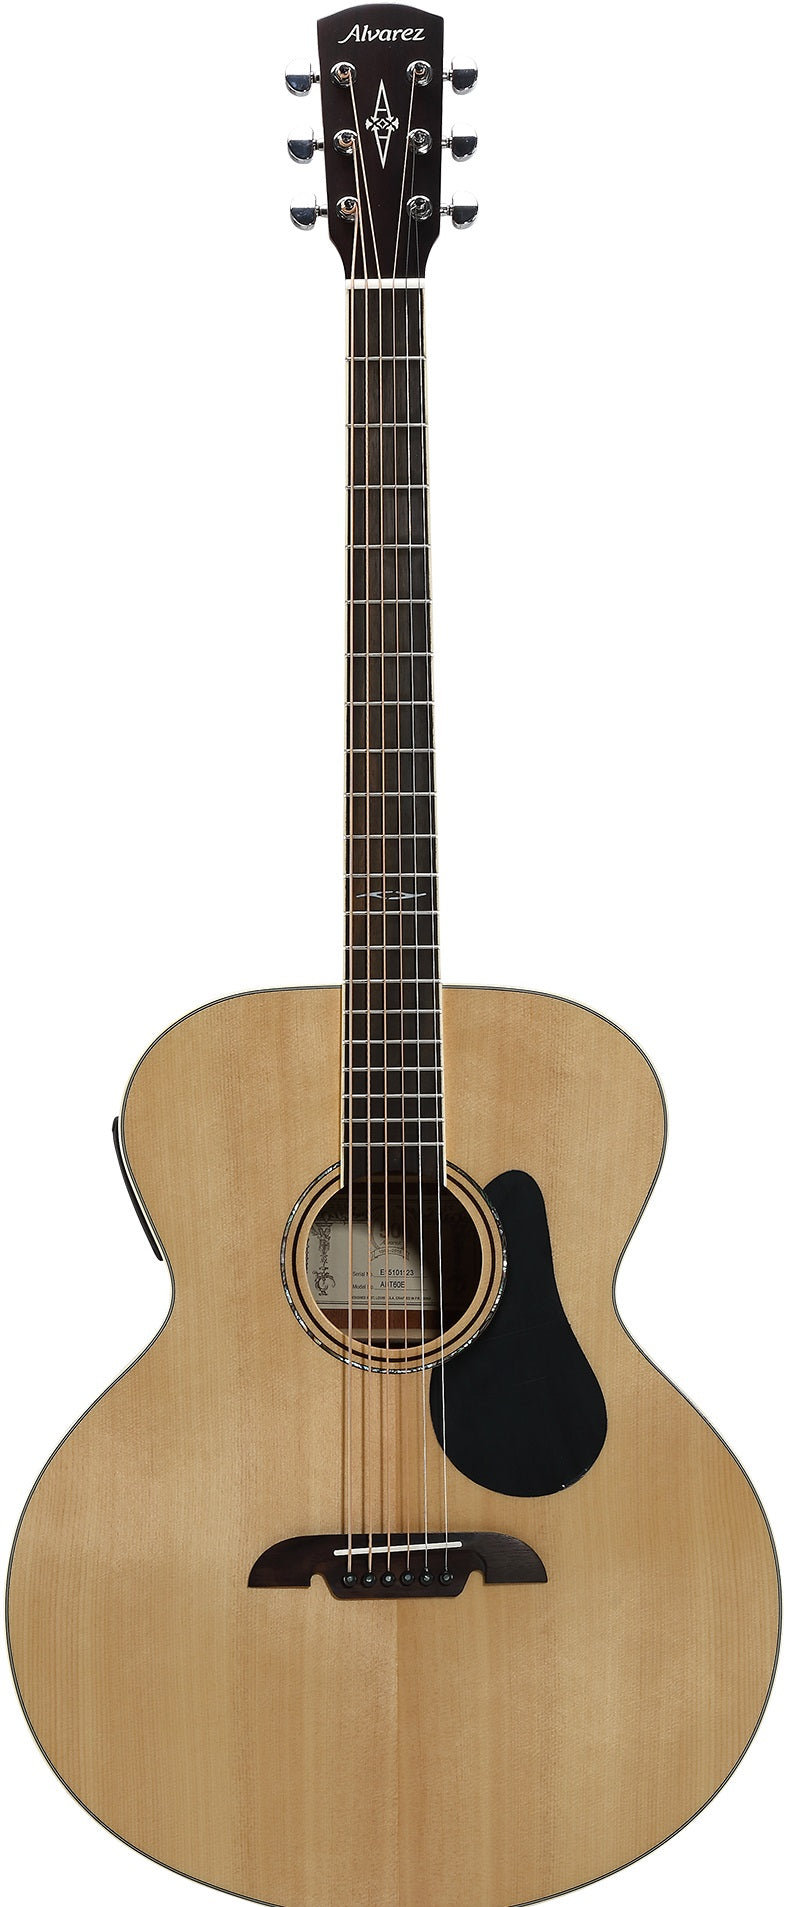 Alvarez ABT60E Baritone Acoustic-Electric Guitar